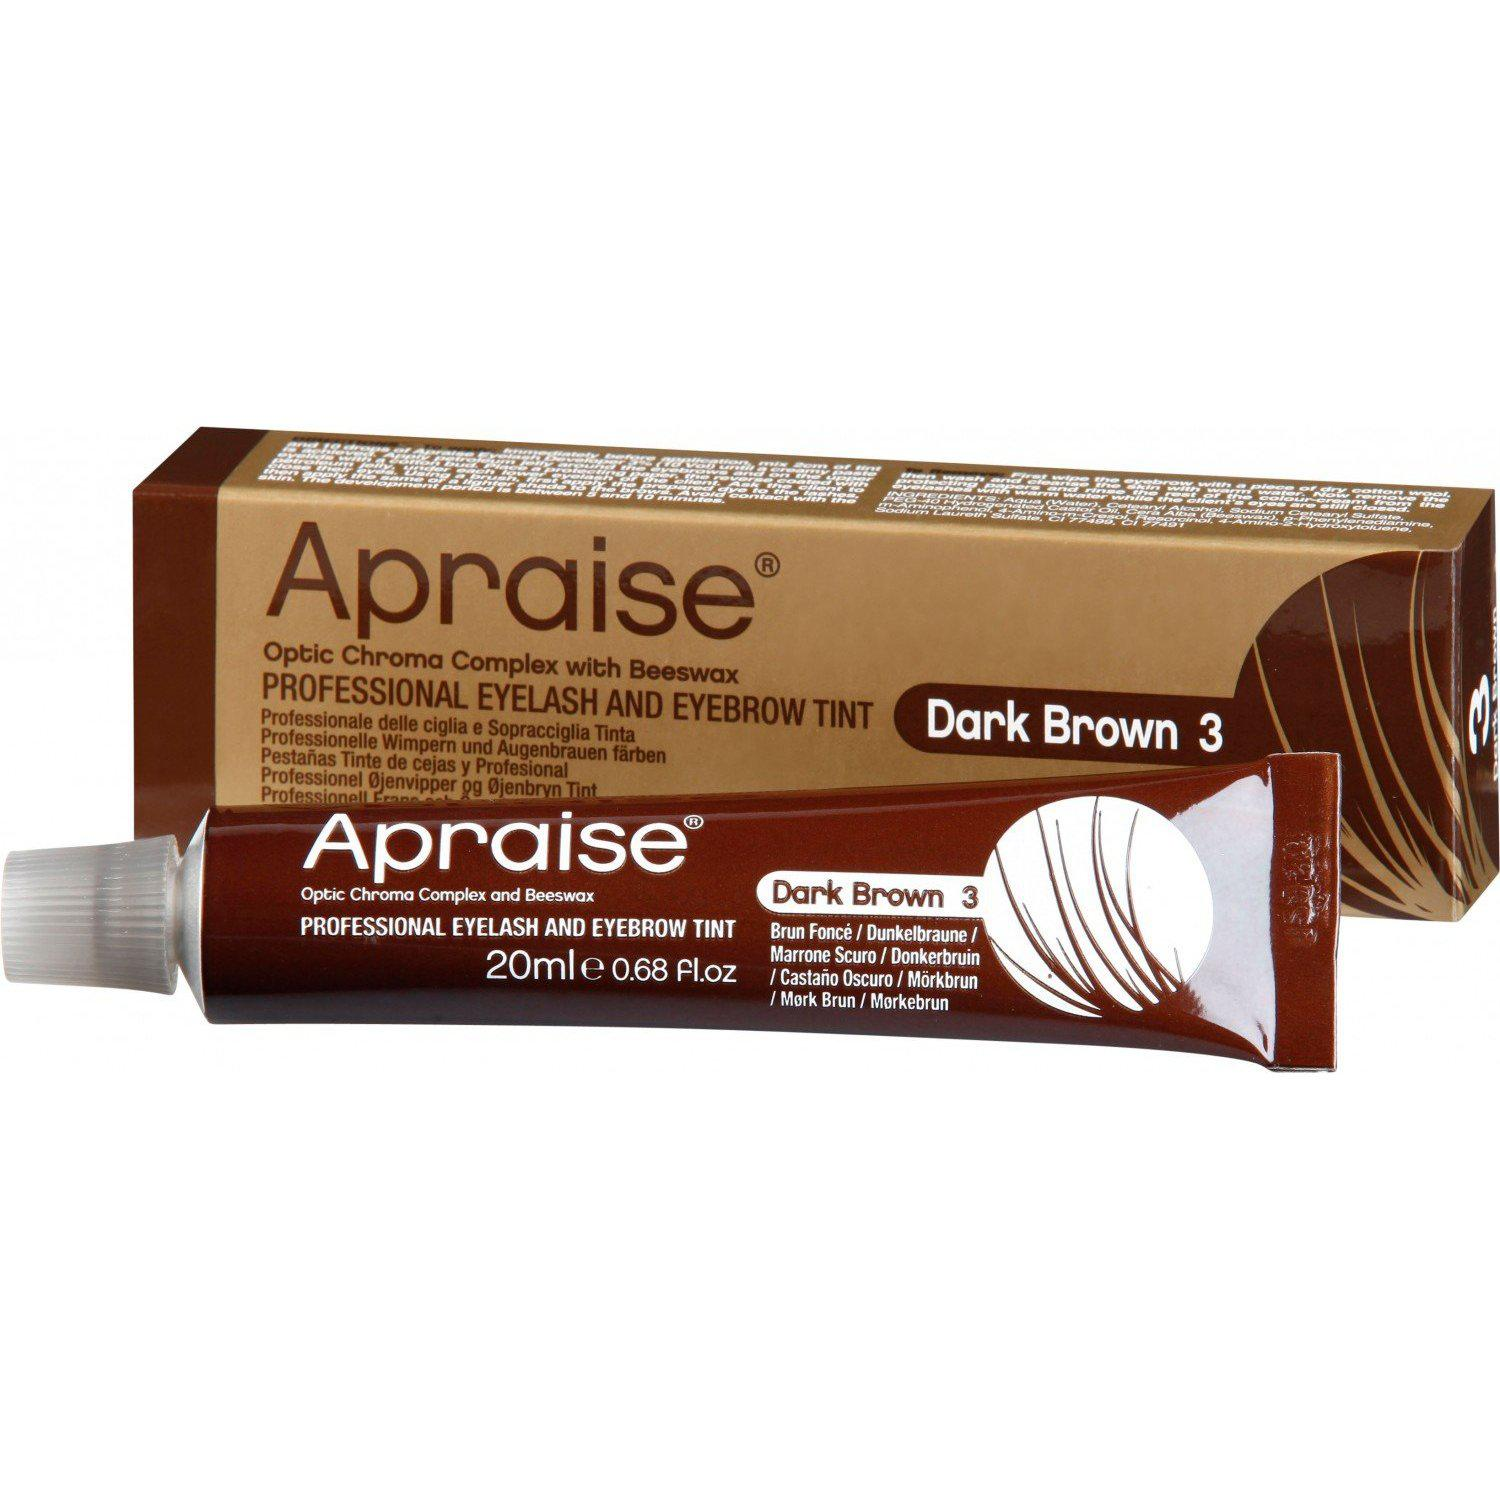 Apraise Dark Brown Eyelash & Eyebrow Tint - No.3 20ml